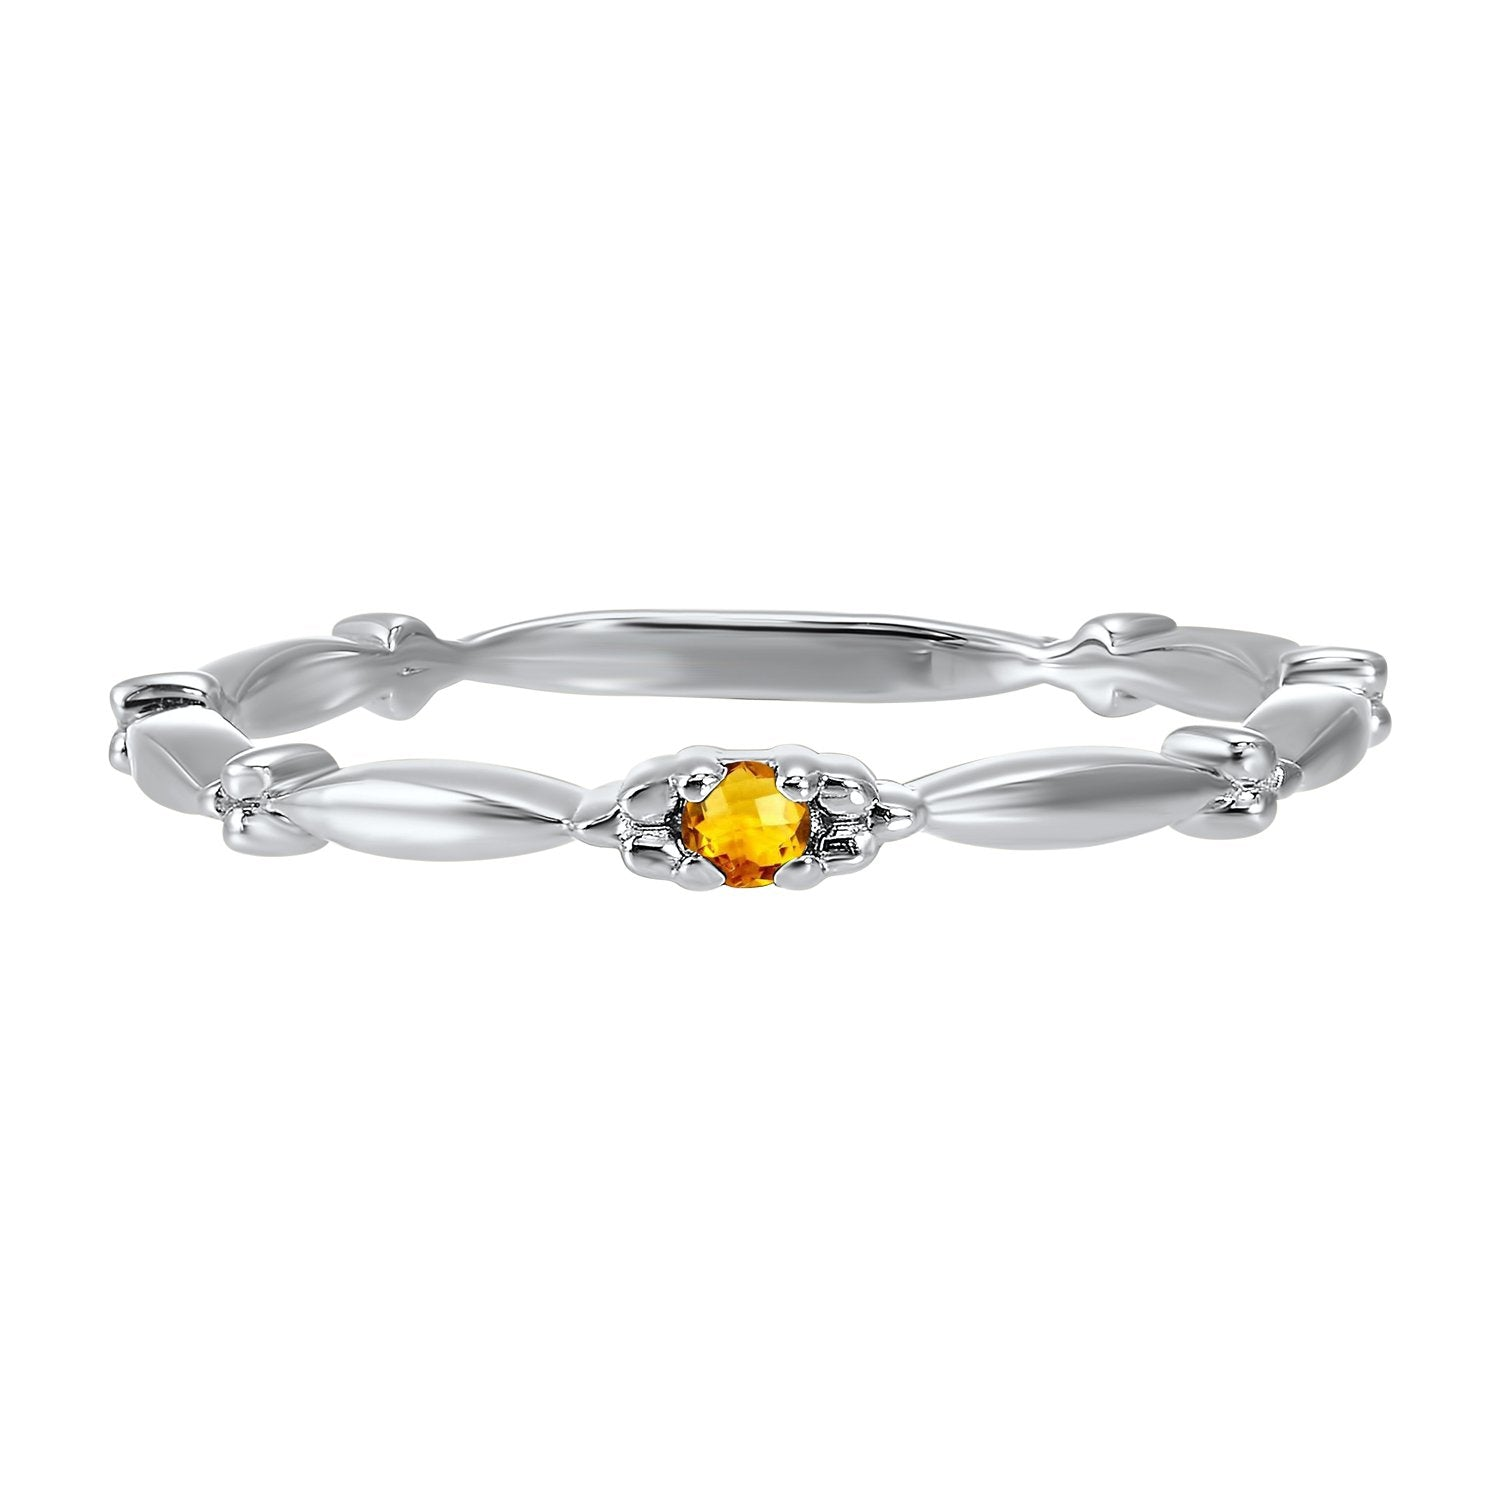 10K White Gold Stackable Prong Citrine Band